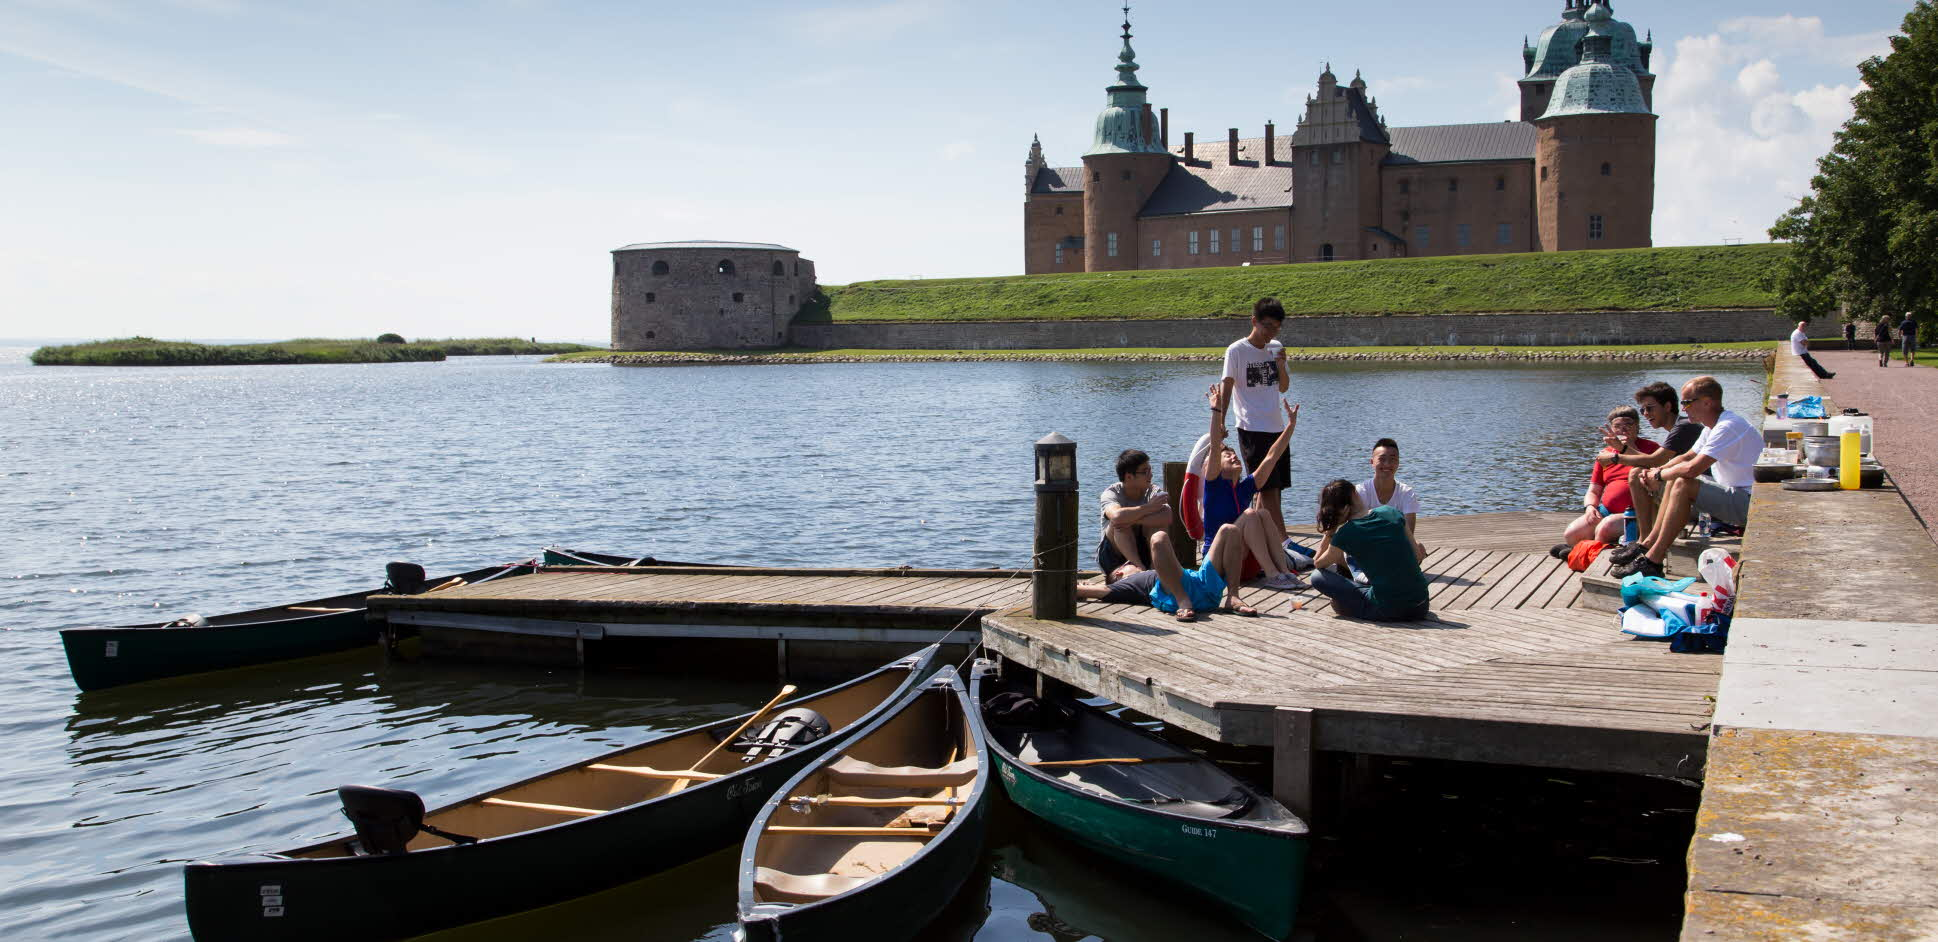 Students enjoying Kalmar castle